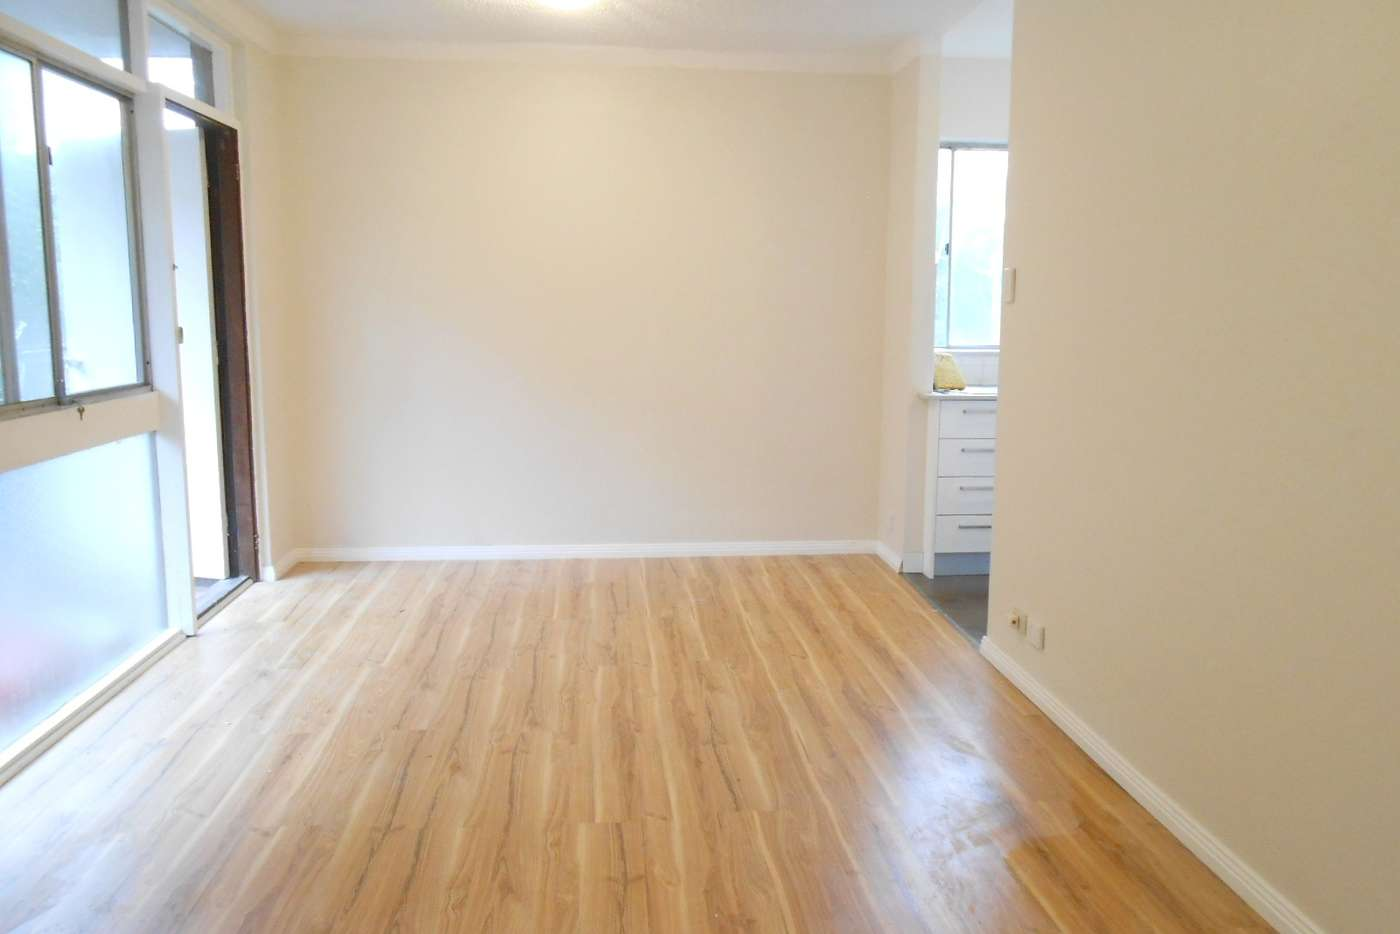 Main view of Homely apartment listing, 12/14 Maxim Street, West Ryde NSW 2114